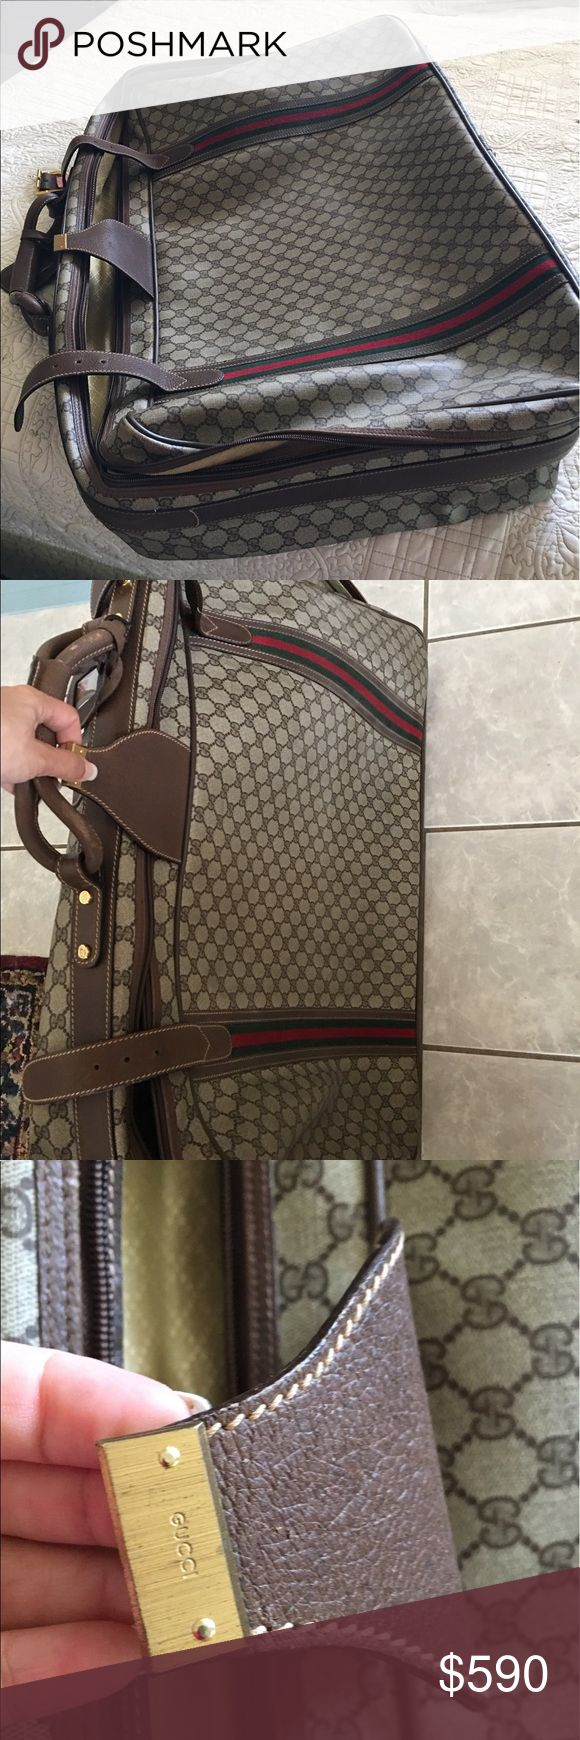 Gucci Large Suitcase with code&block !Awesome! Beautiful investment authentic Gucci Large suitcase vintage good condition! I love this suitcase ! Super stylish  travel. Gucci Bags Luggage & Travel Bags